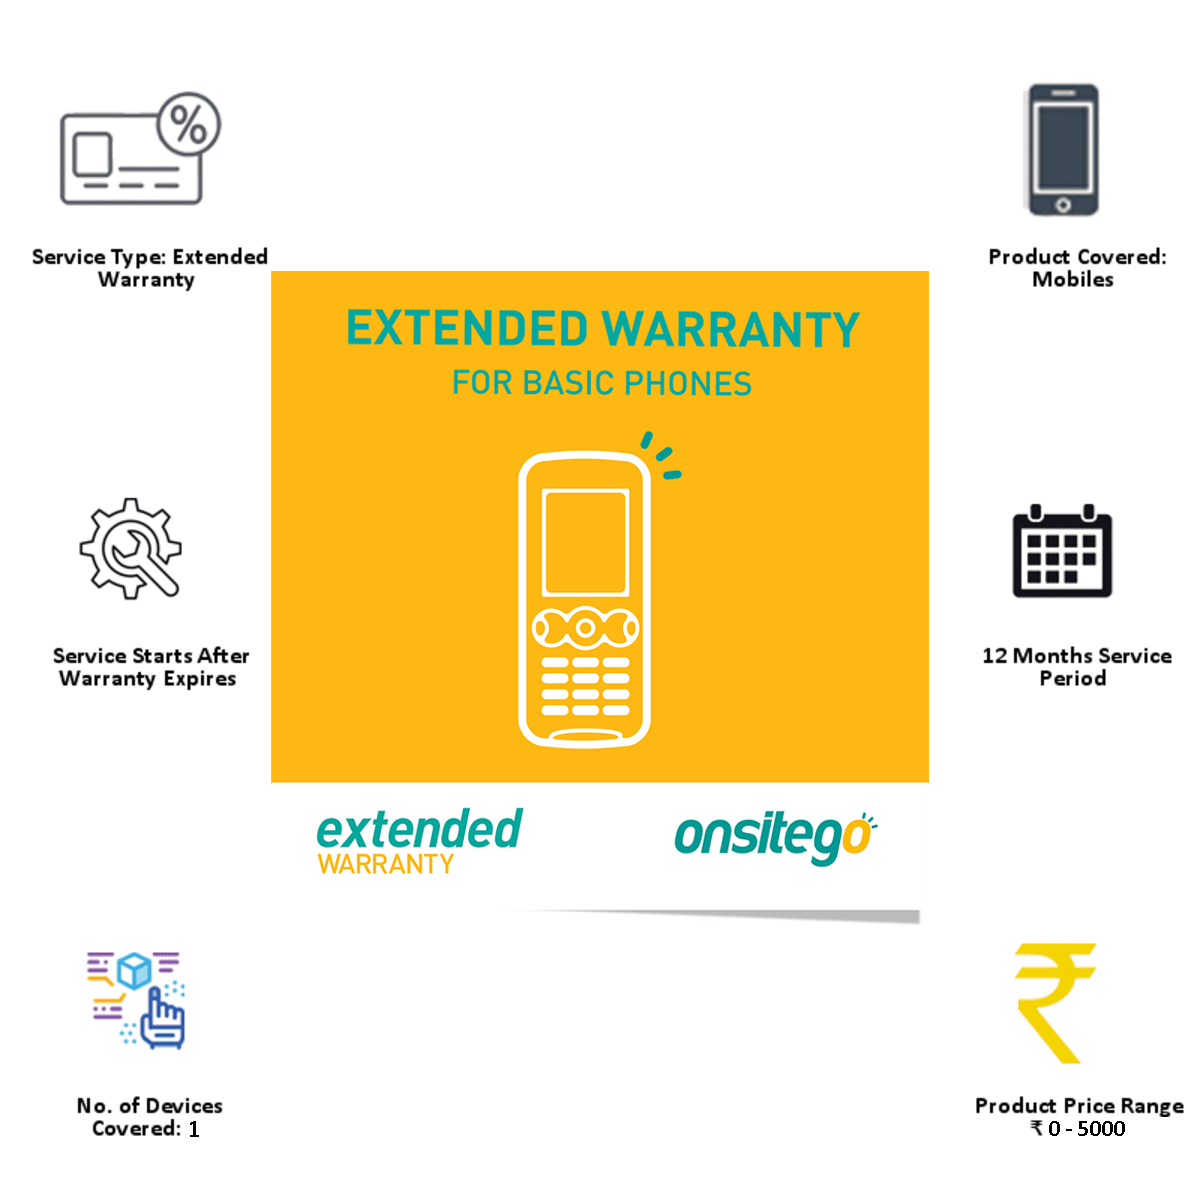 Onsitego 1 Year Extended Warranty for Basic Phone (Rs.0 - Rs.5,000)_8